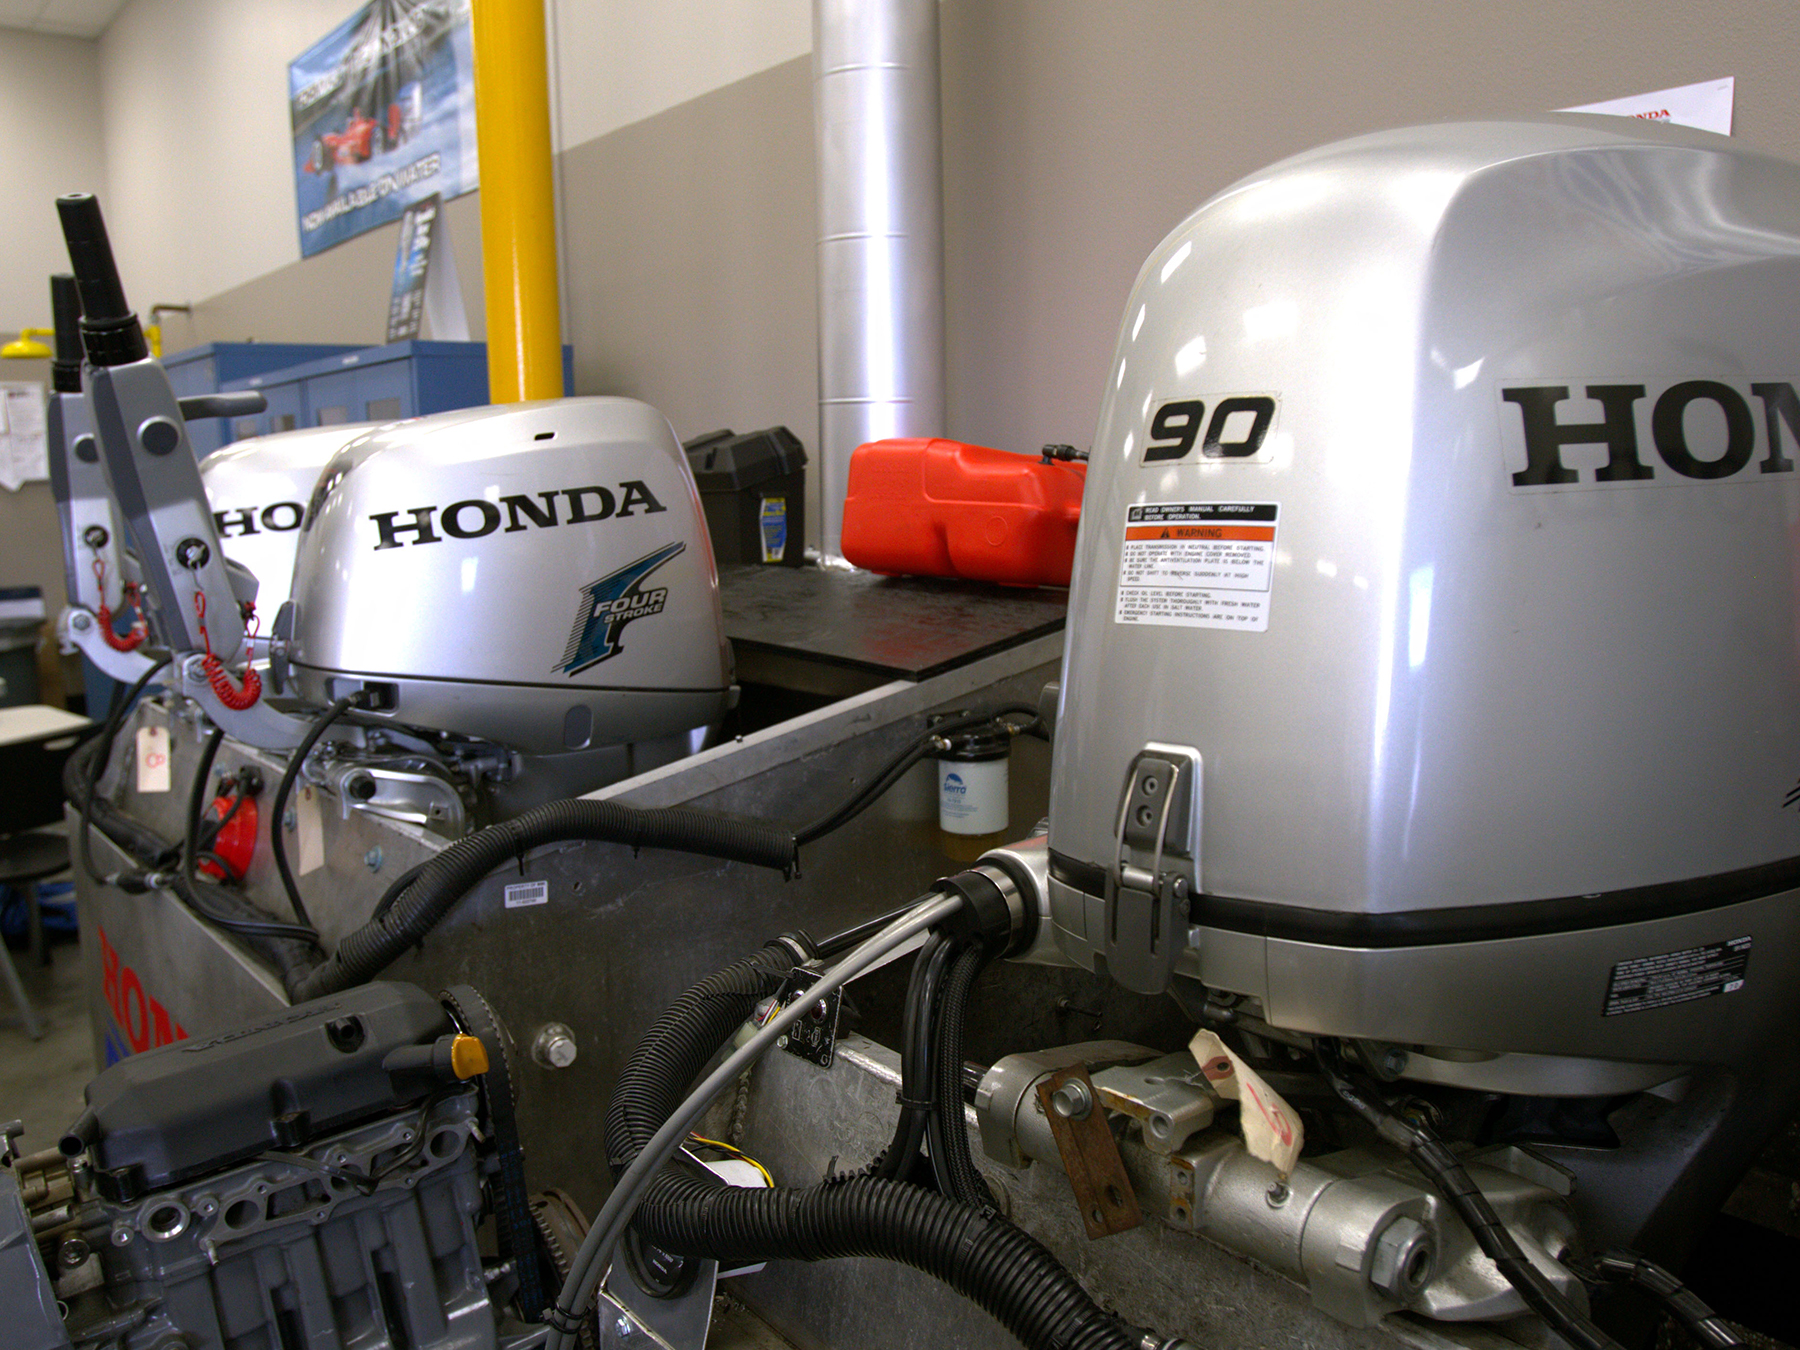 3 honda engines in the Honda marine lab